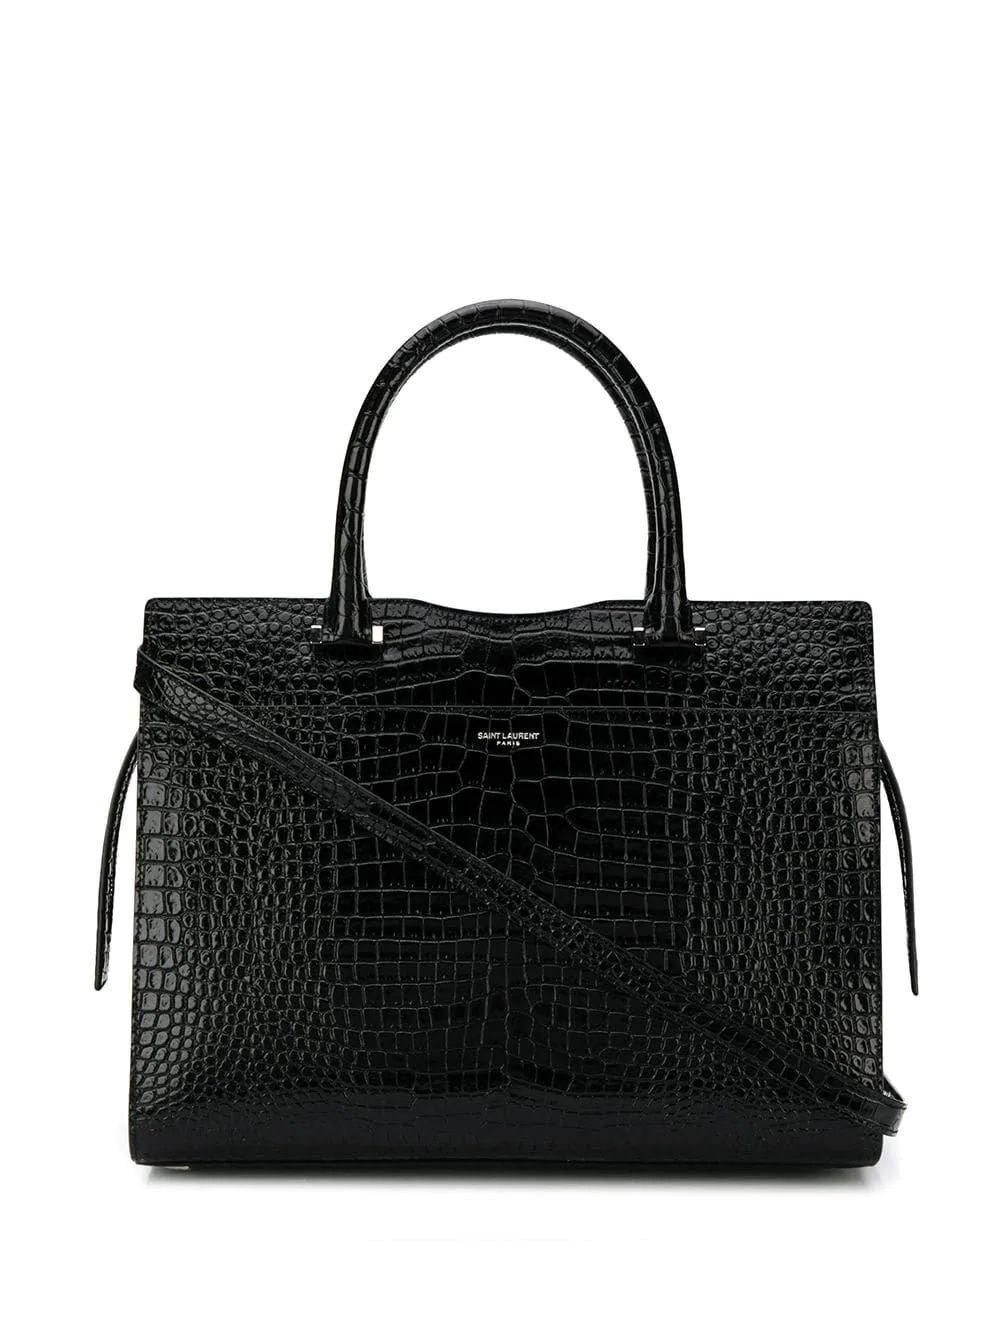 Uptown Croc Double Carry Bag Item # 557653DND0N